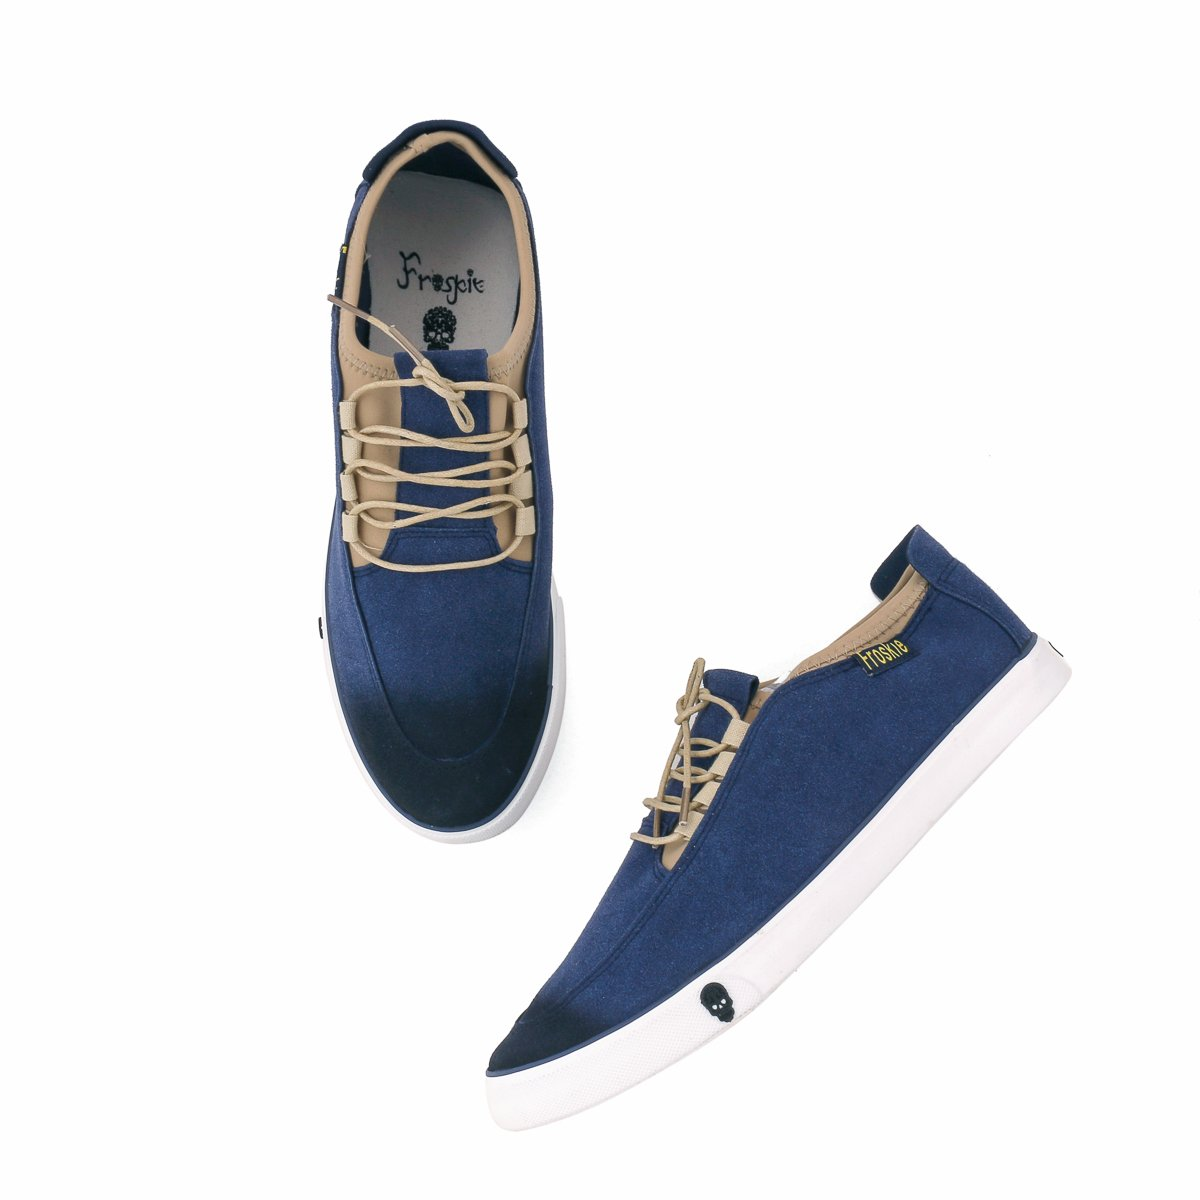 Froskie Vulcanised Canvas Casual Shoes